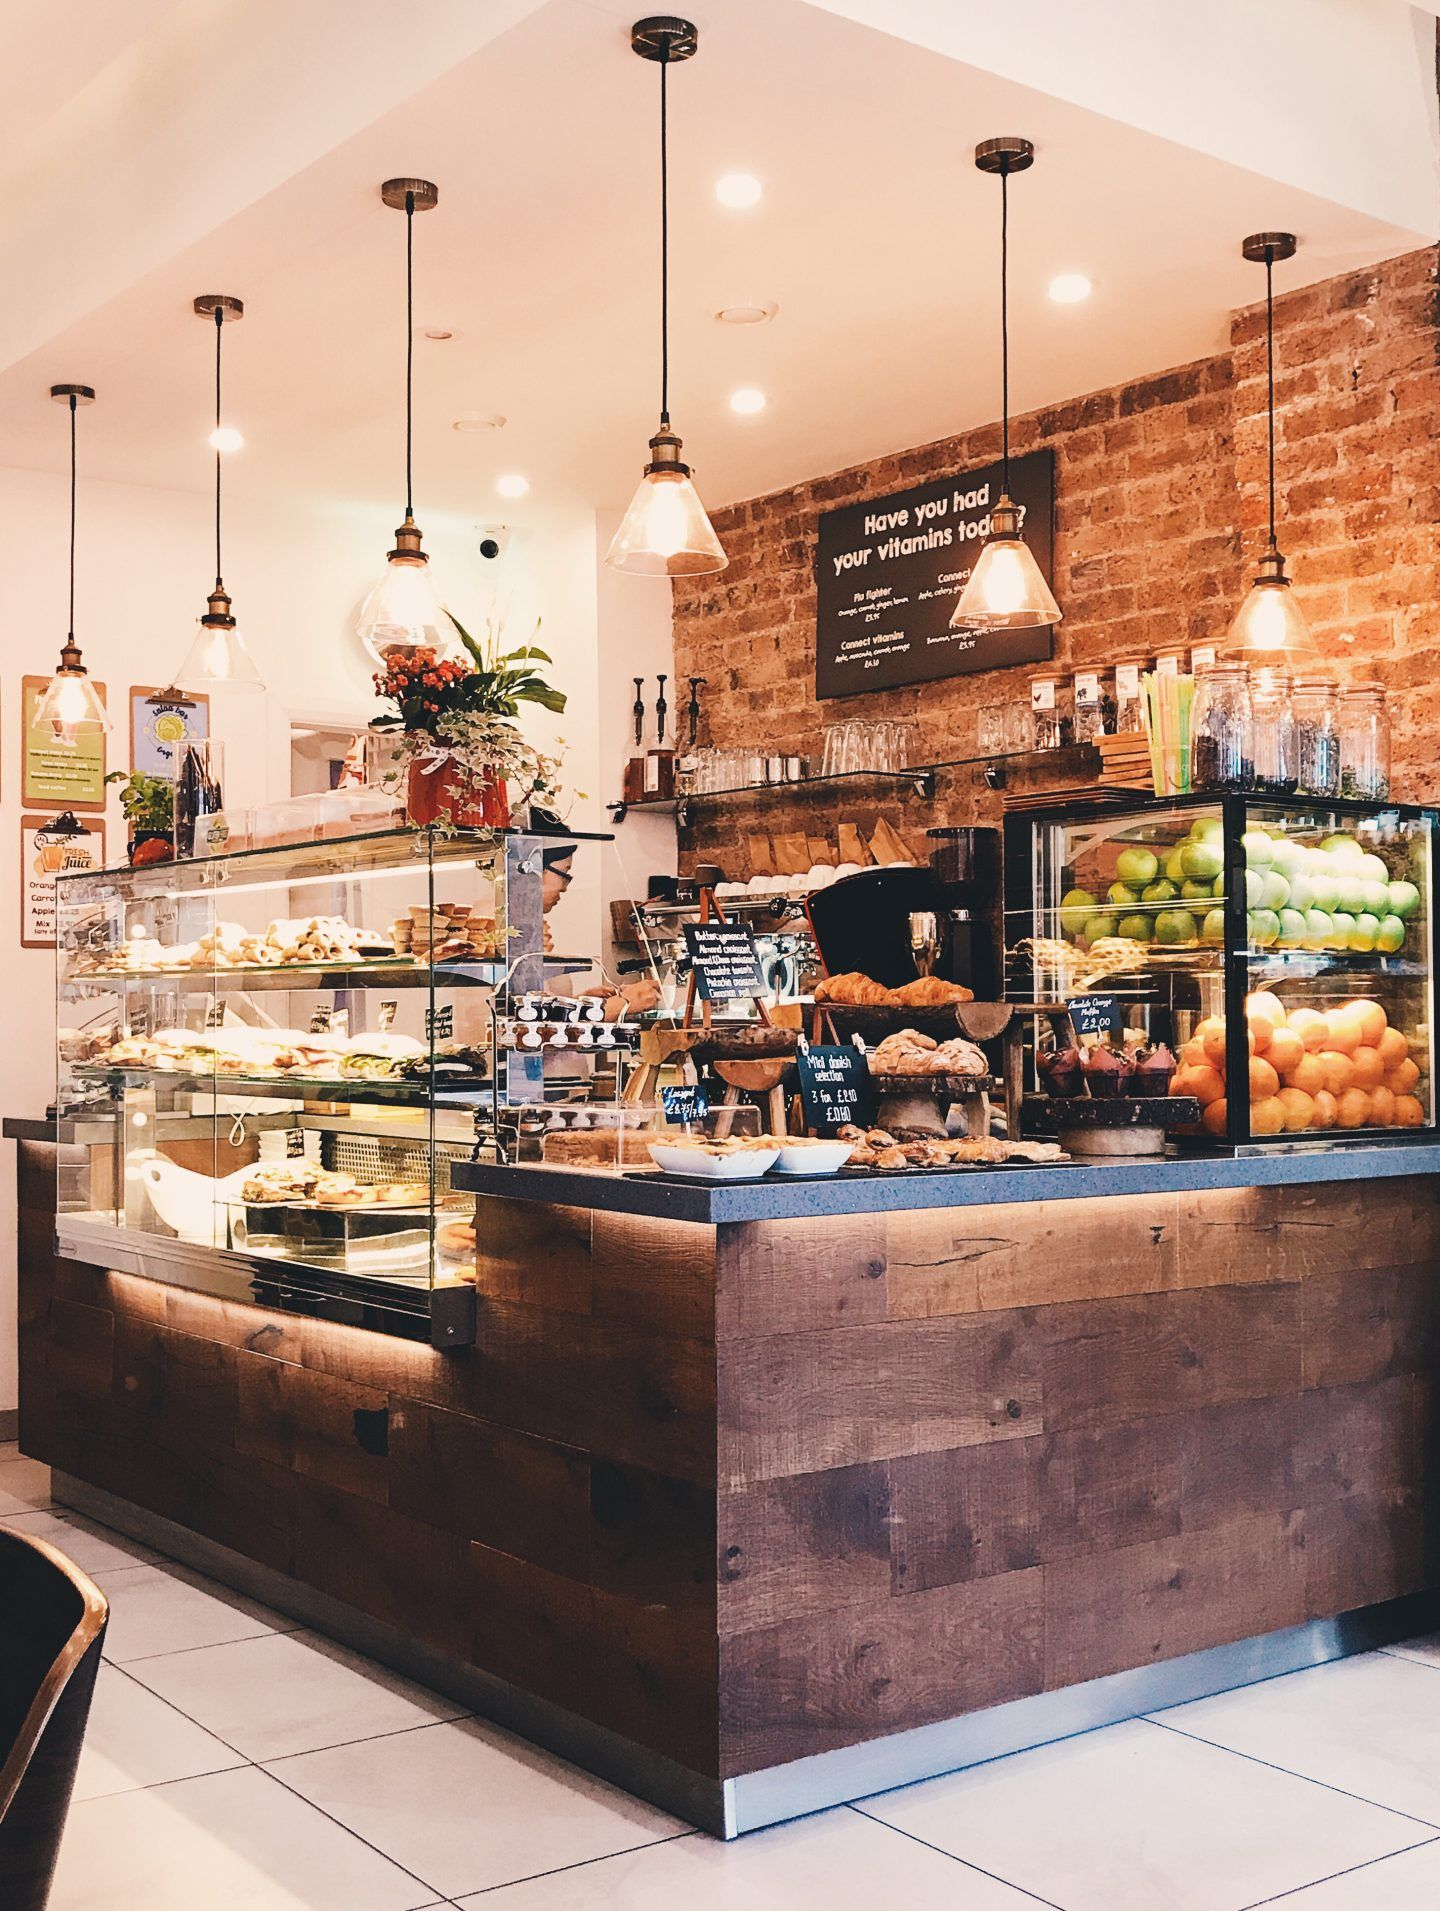 Cafes Near Me To Study